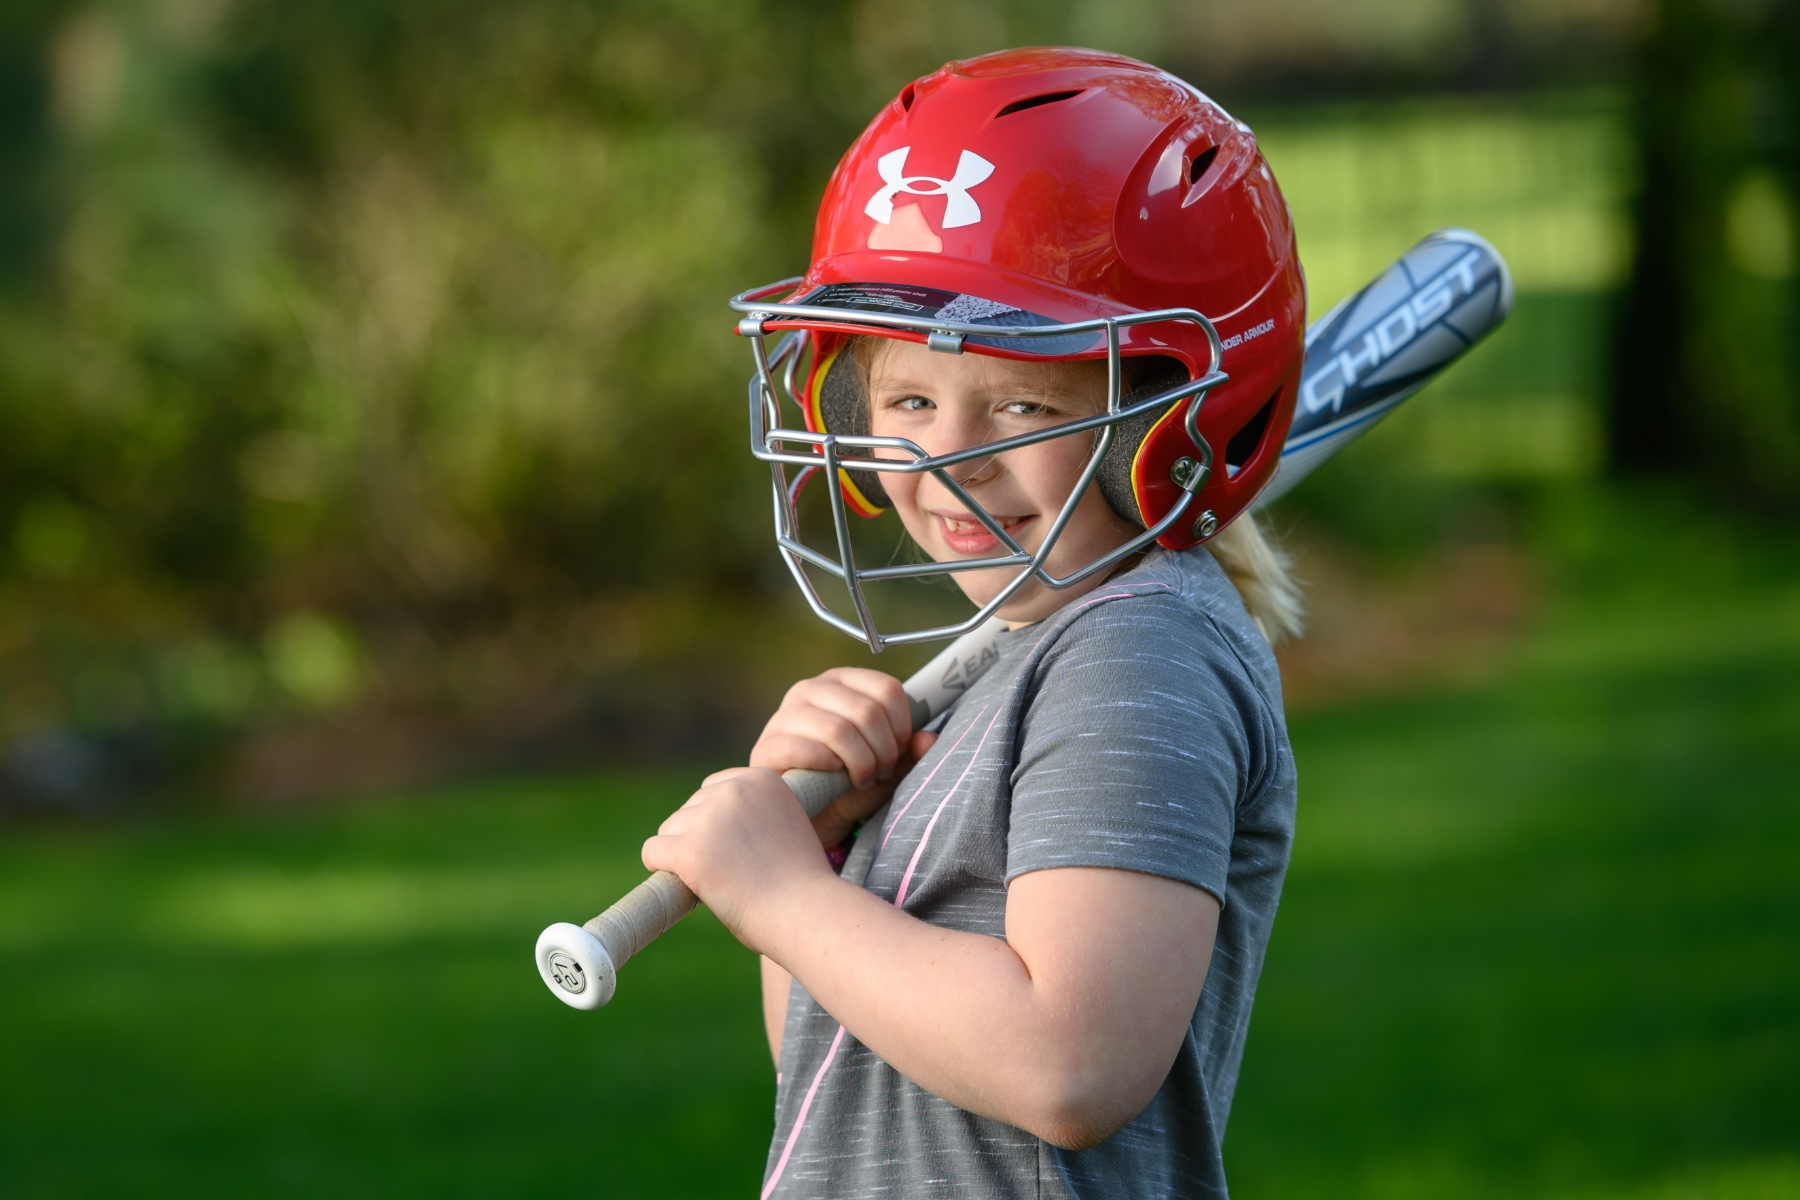 Sarah Beth Ferguson, a blonde eight-year-old white girl wearing a grey shirt, poses outside in a red softball helmet. She holds a grey bat over her shoulder.